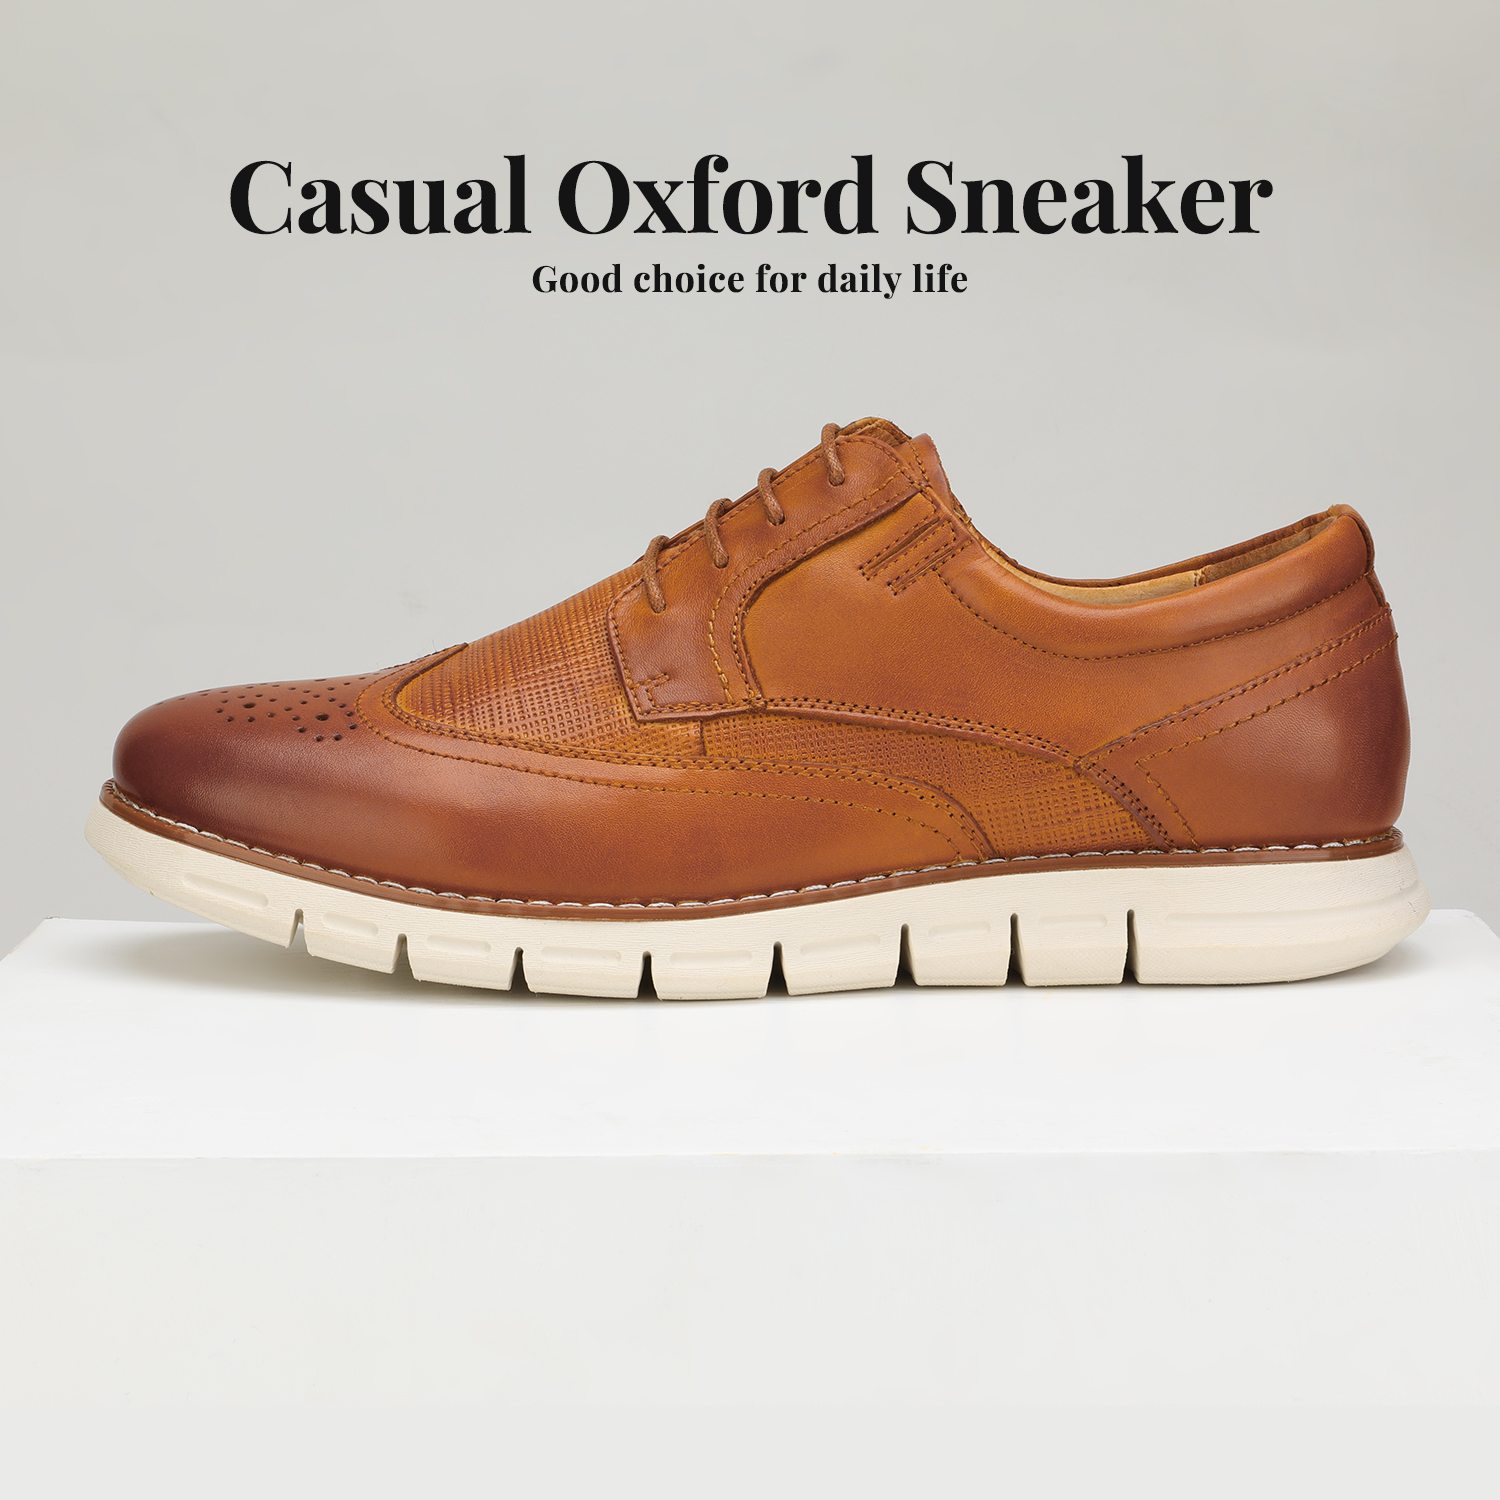 Men-s-Genuine-Leather-Casual-Formal-Sneakers-Lace-up-Business-Oxford-Dress-Shoes thumbnail 25